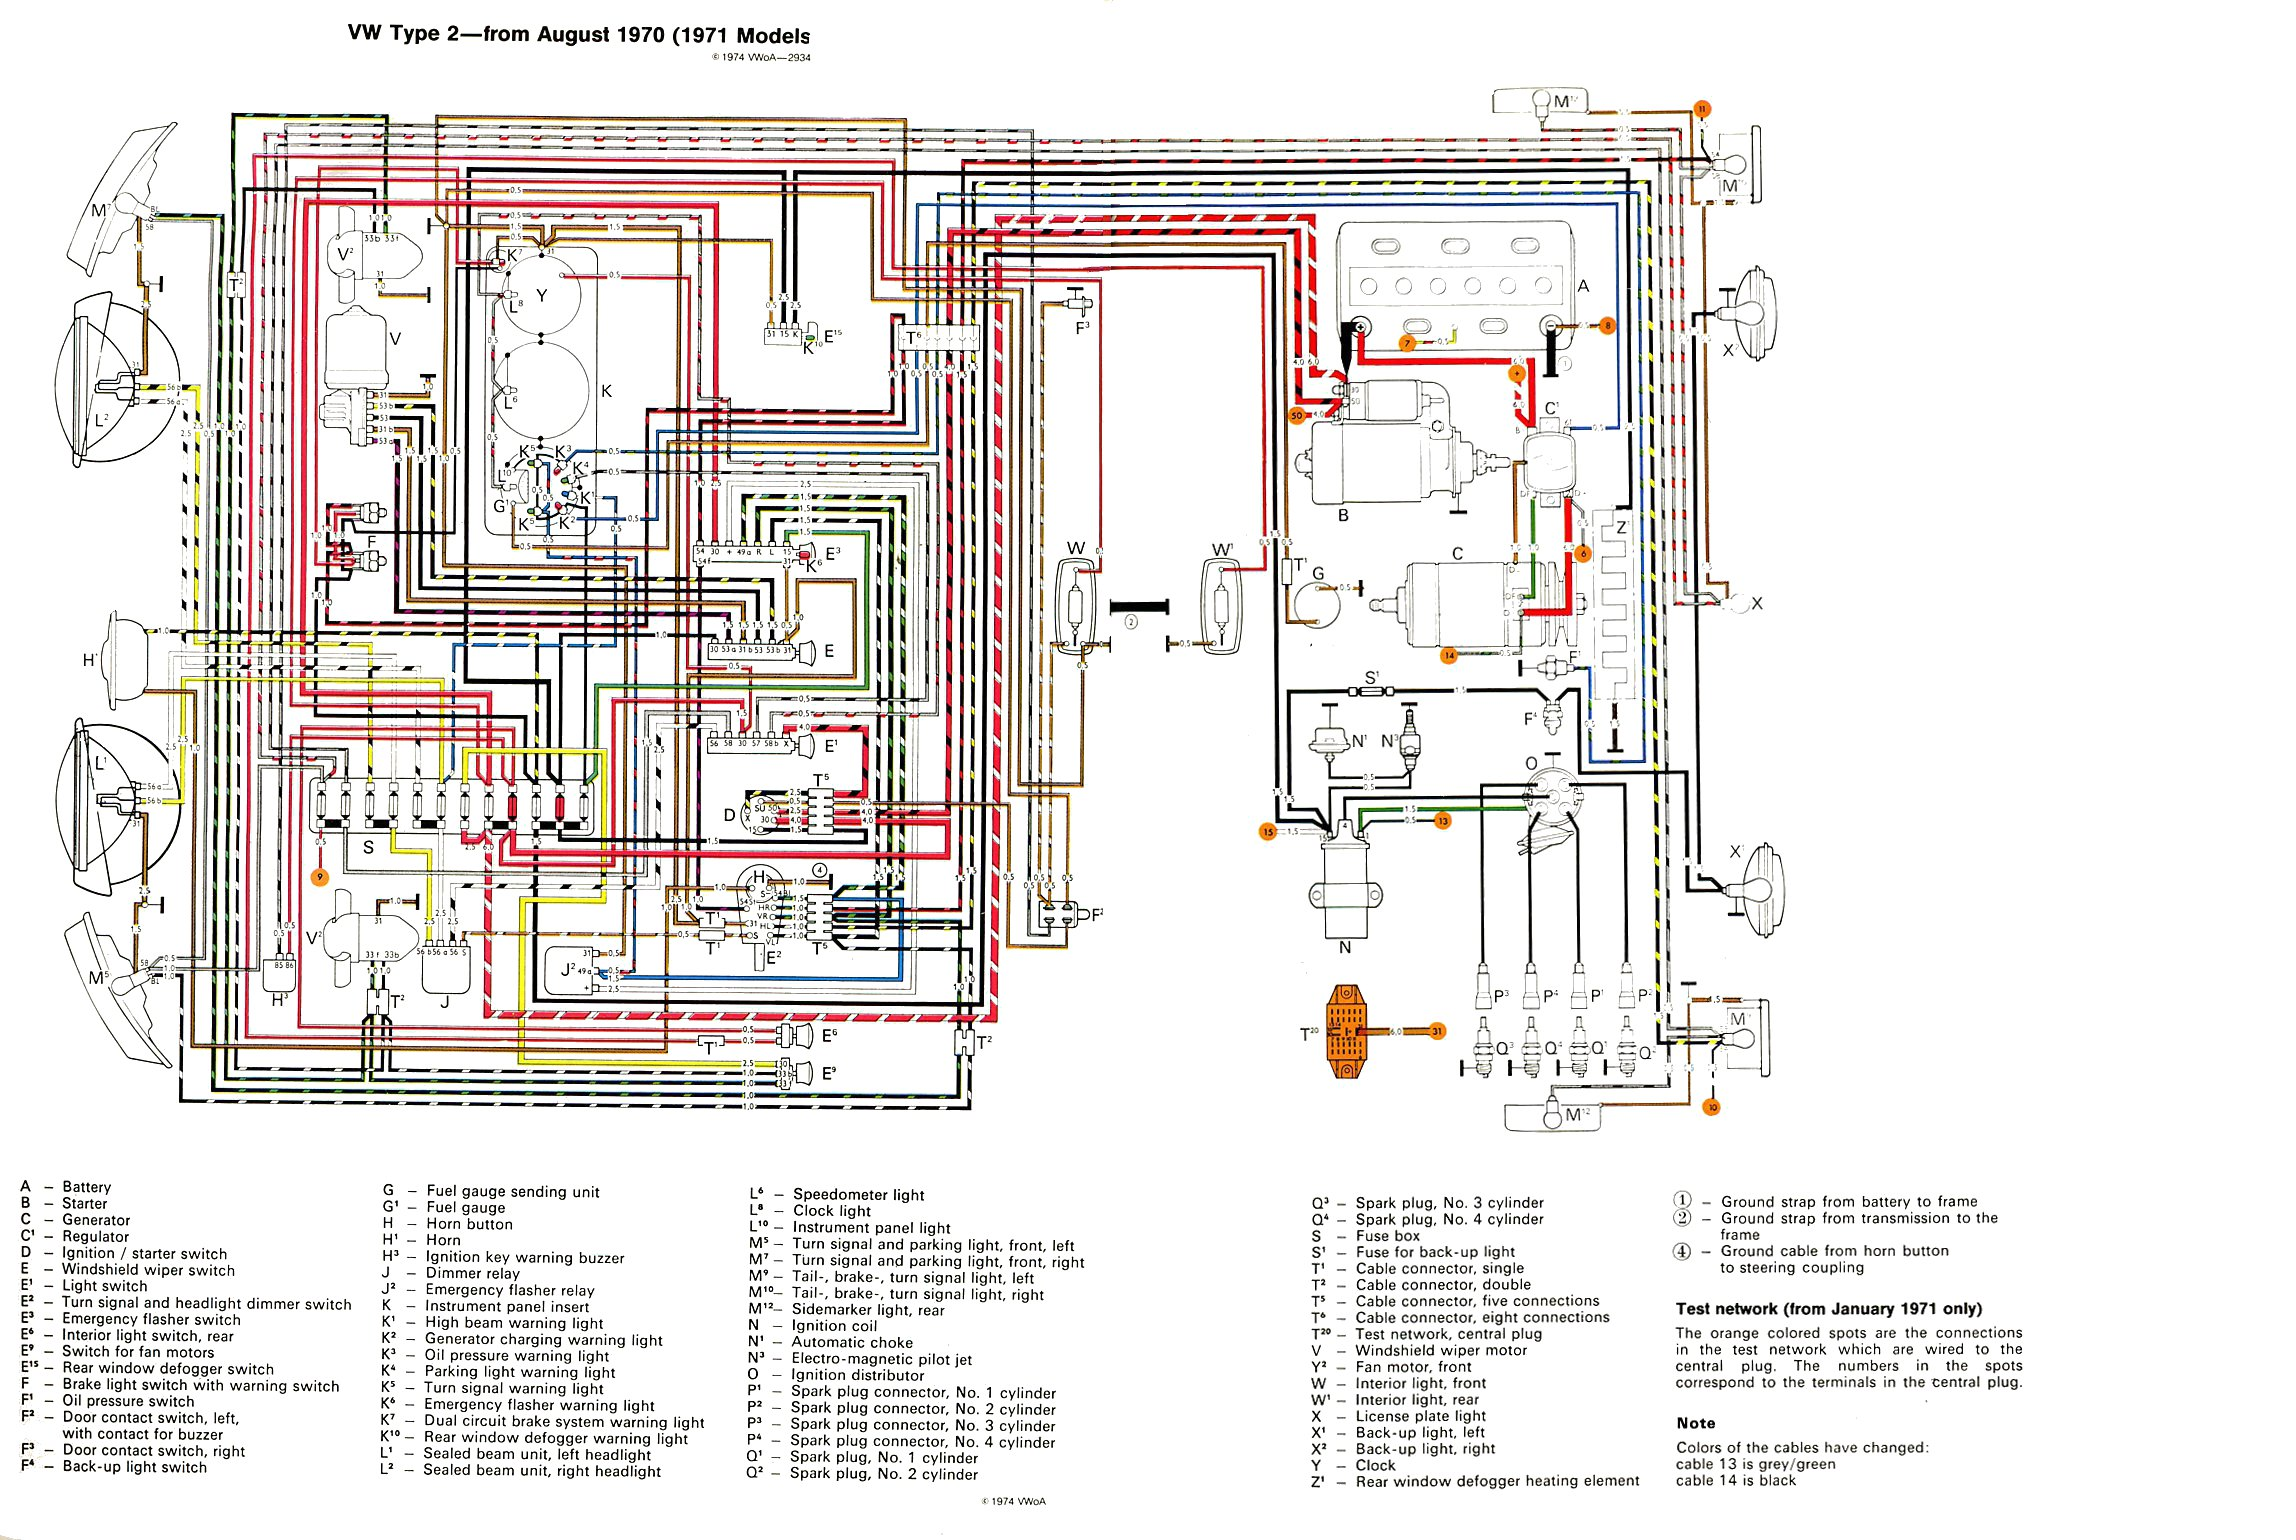 baybus_71 thesamba com type 2 wiring diagrams fuse box wiring diagram at reclaimingppi.co